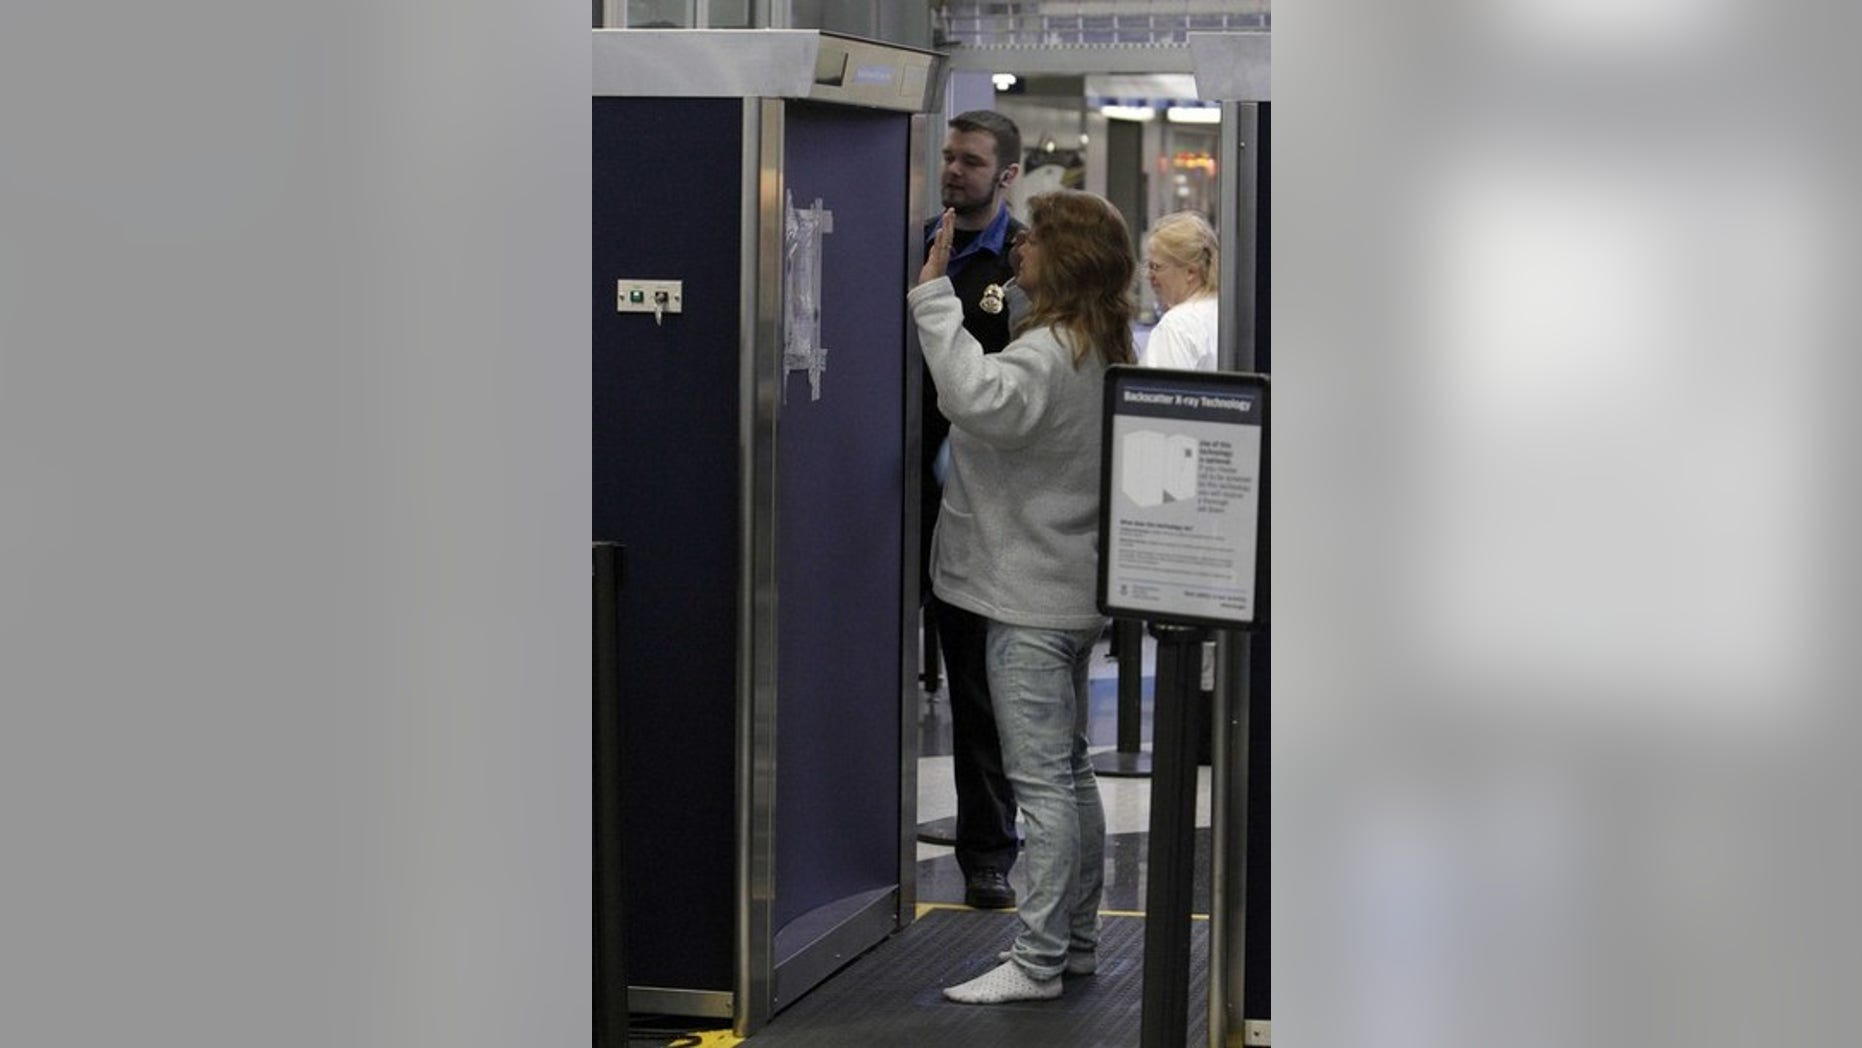 A passenger is examined by a full-body scanner at a Transportation Security Administration screening check-point at O'Hare International airport in Chicago November 24, 2010. The TSA has been flooded with complaints concerning what some term their law-enforcement style pat downs of passengers opting-out of full-body scans.